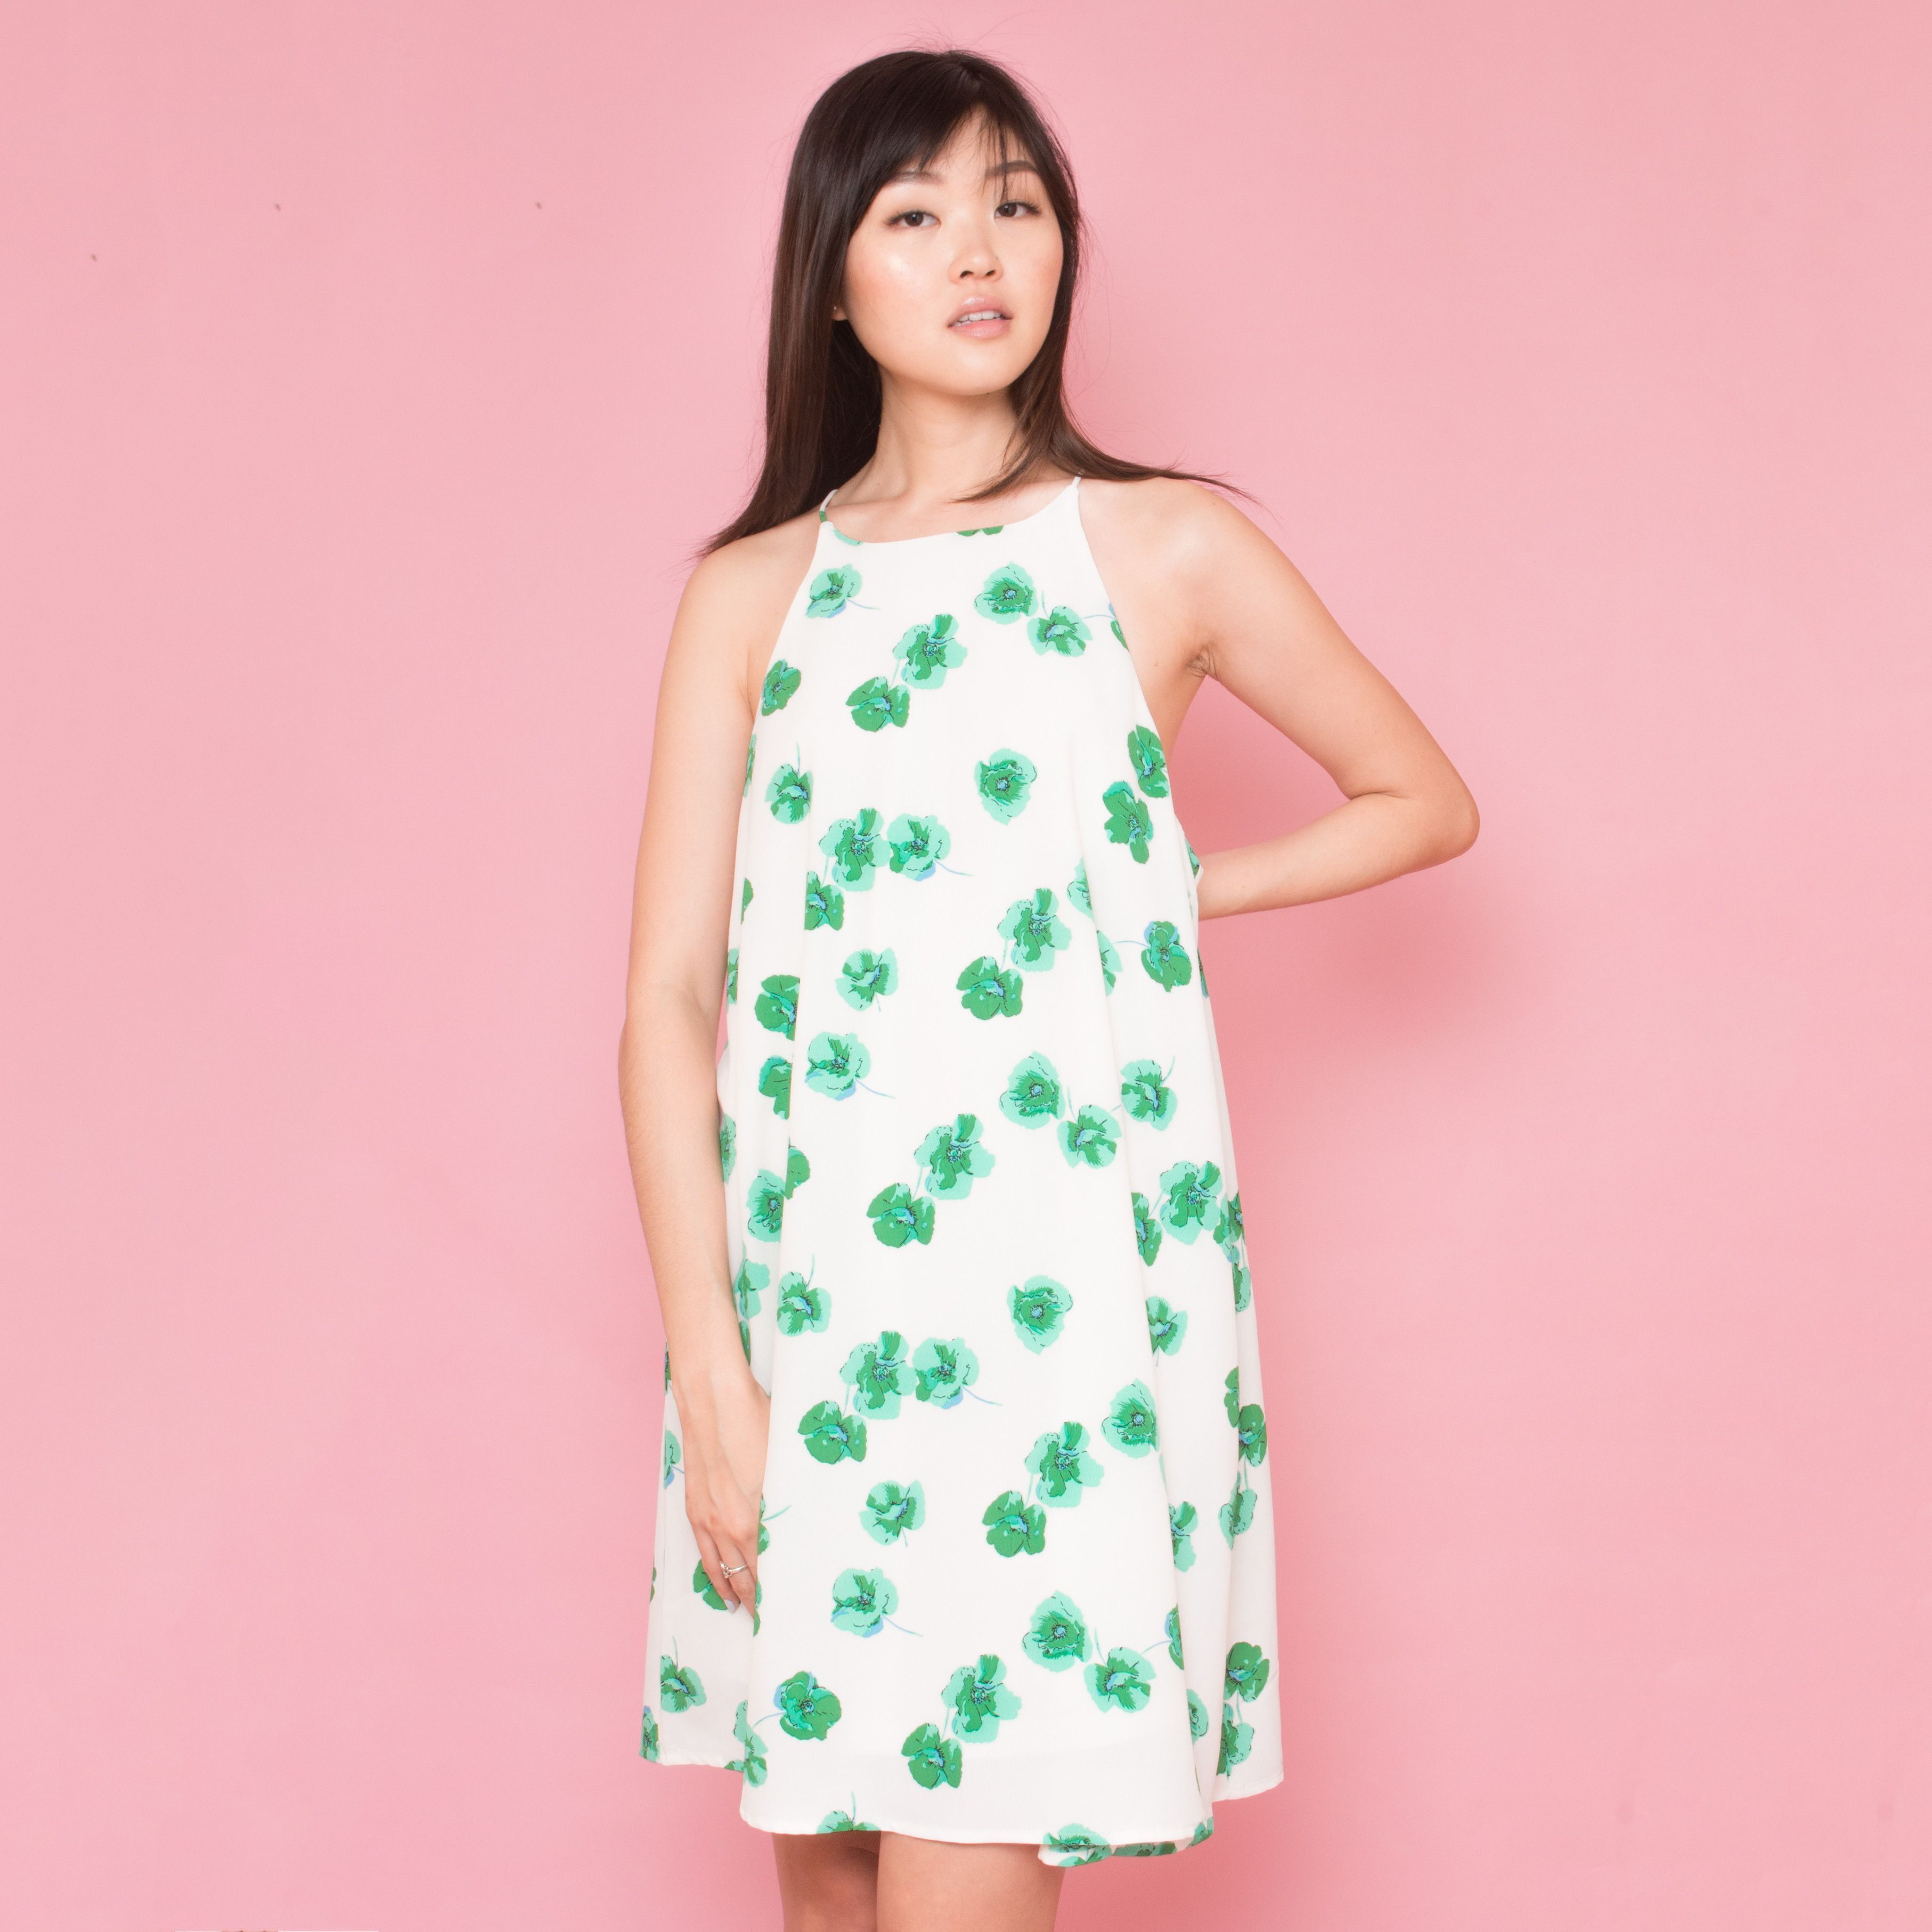 White Halter Dress with Green Flowers | Products | Pinterest